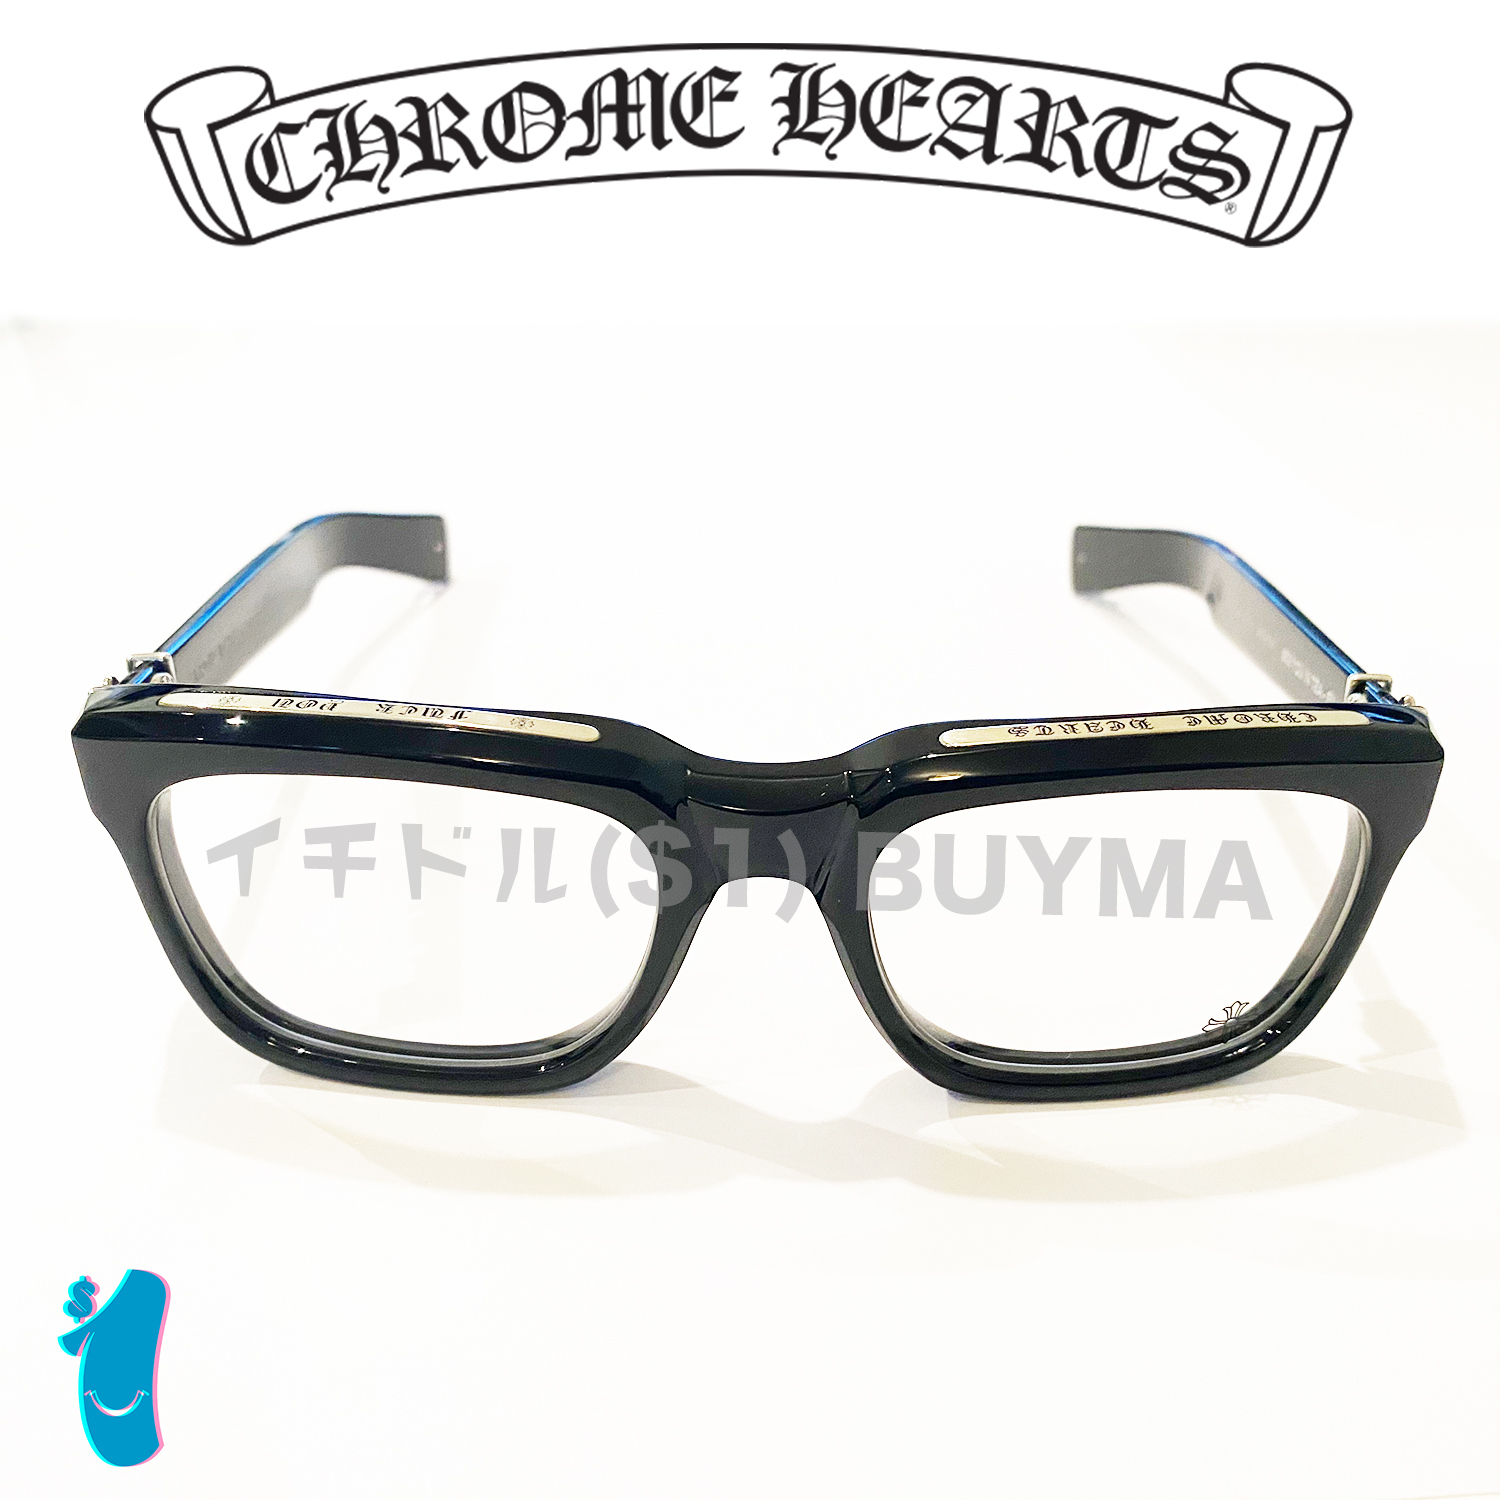 Chrome Hearts クロムハーツ SEE YOU IN TEA メガネ 眼鏡 (CHROME HEARTS/メガネ) 57646345